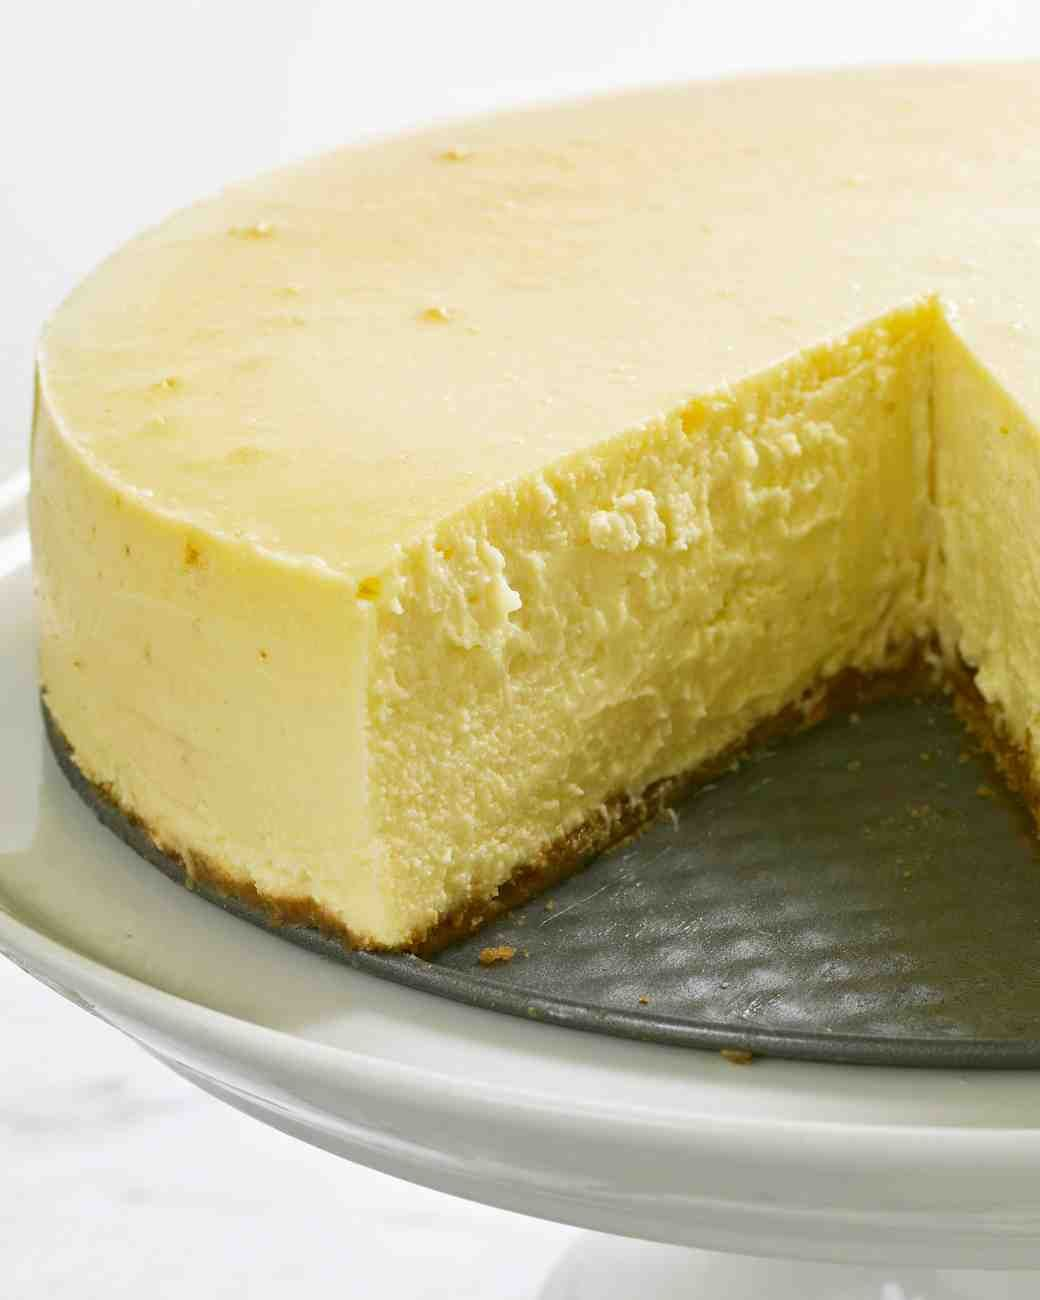 New York Style Cheesecake Recipe Desserts Cheesecake Recipes Food